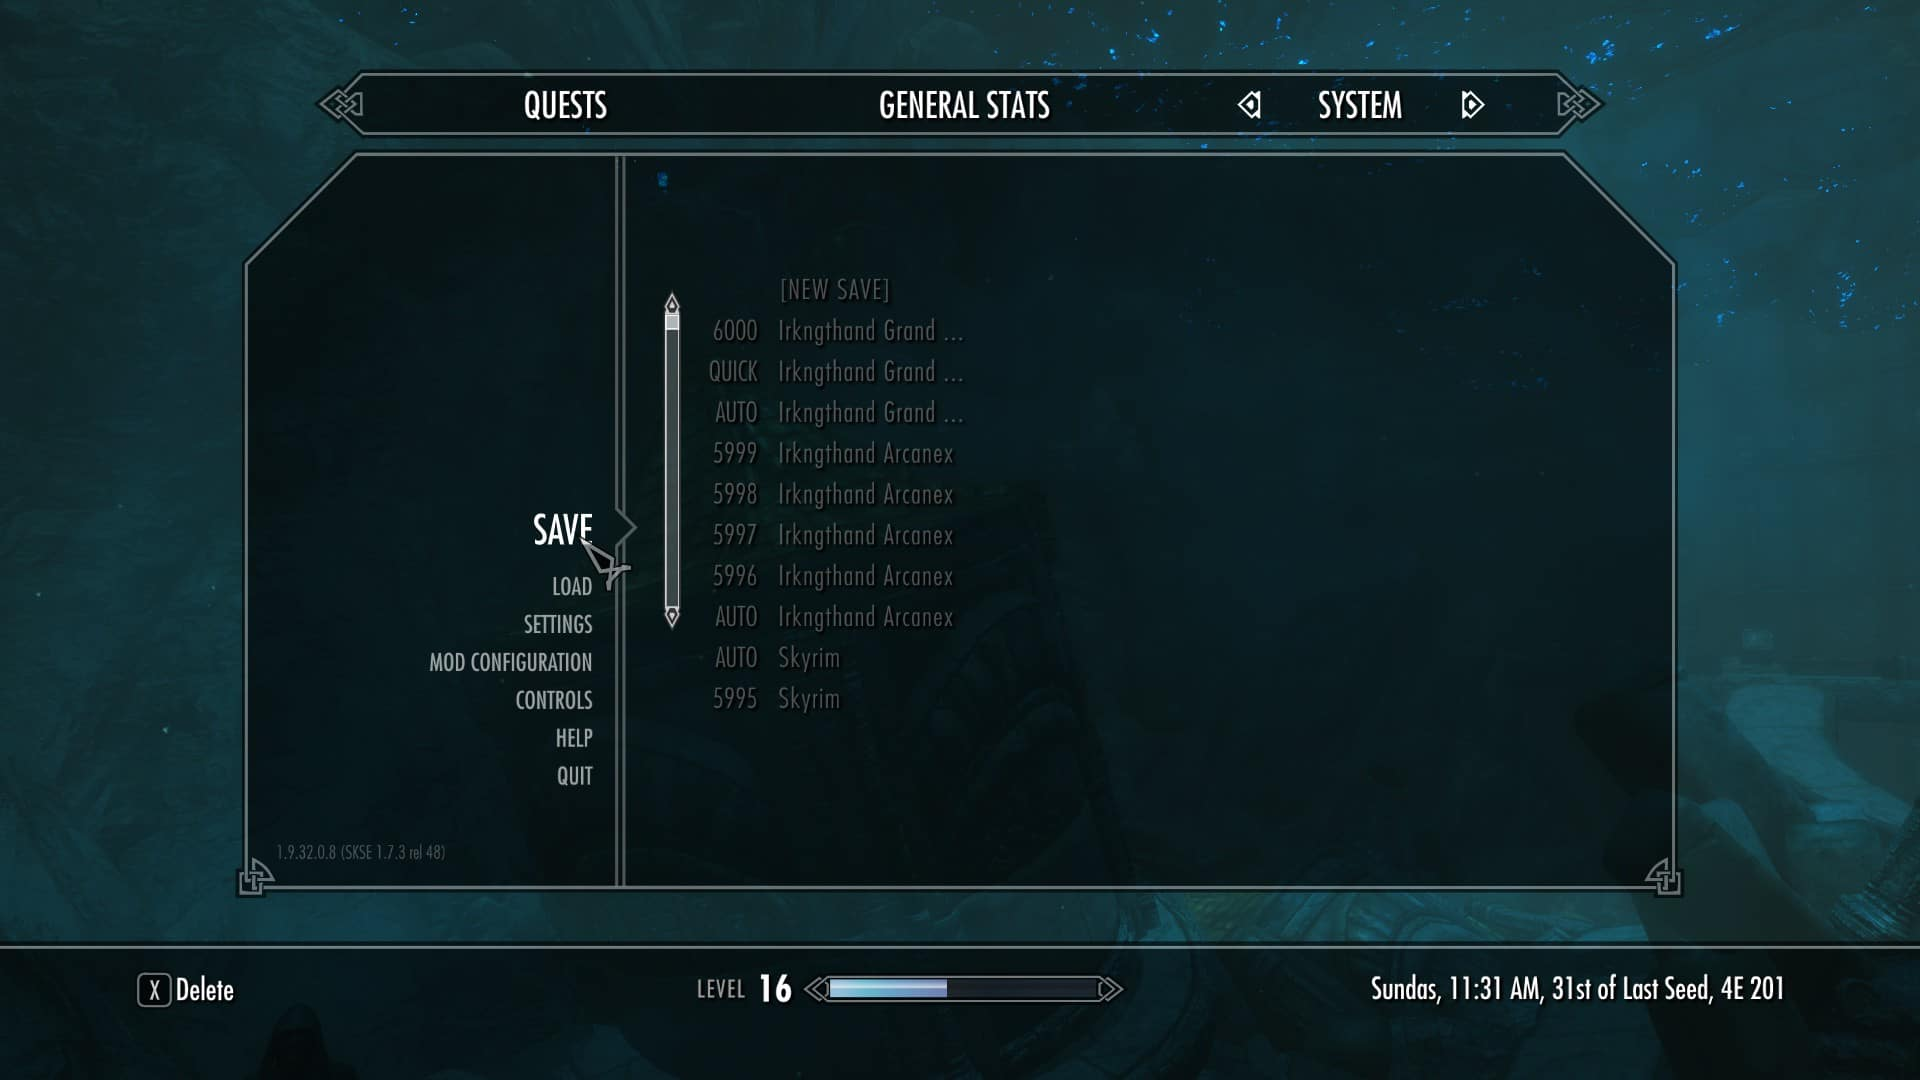 To show that we are loading an old save game in Skyrim